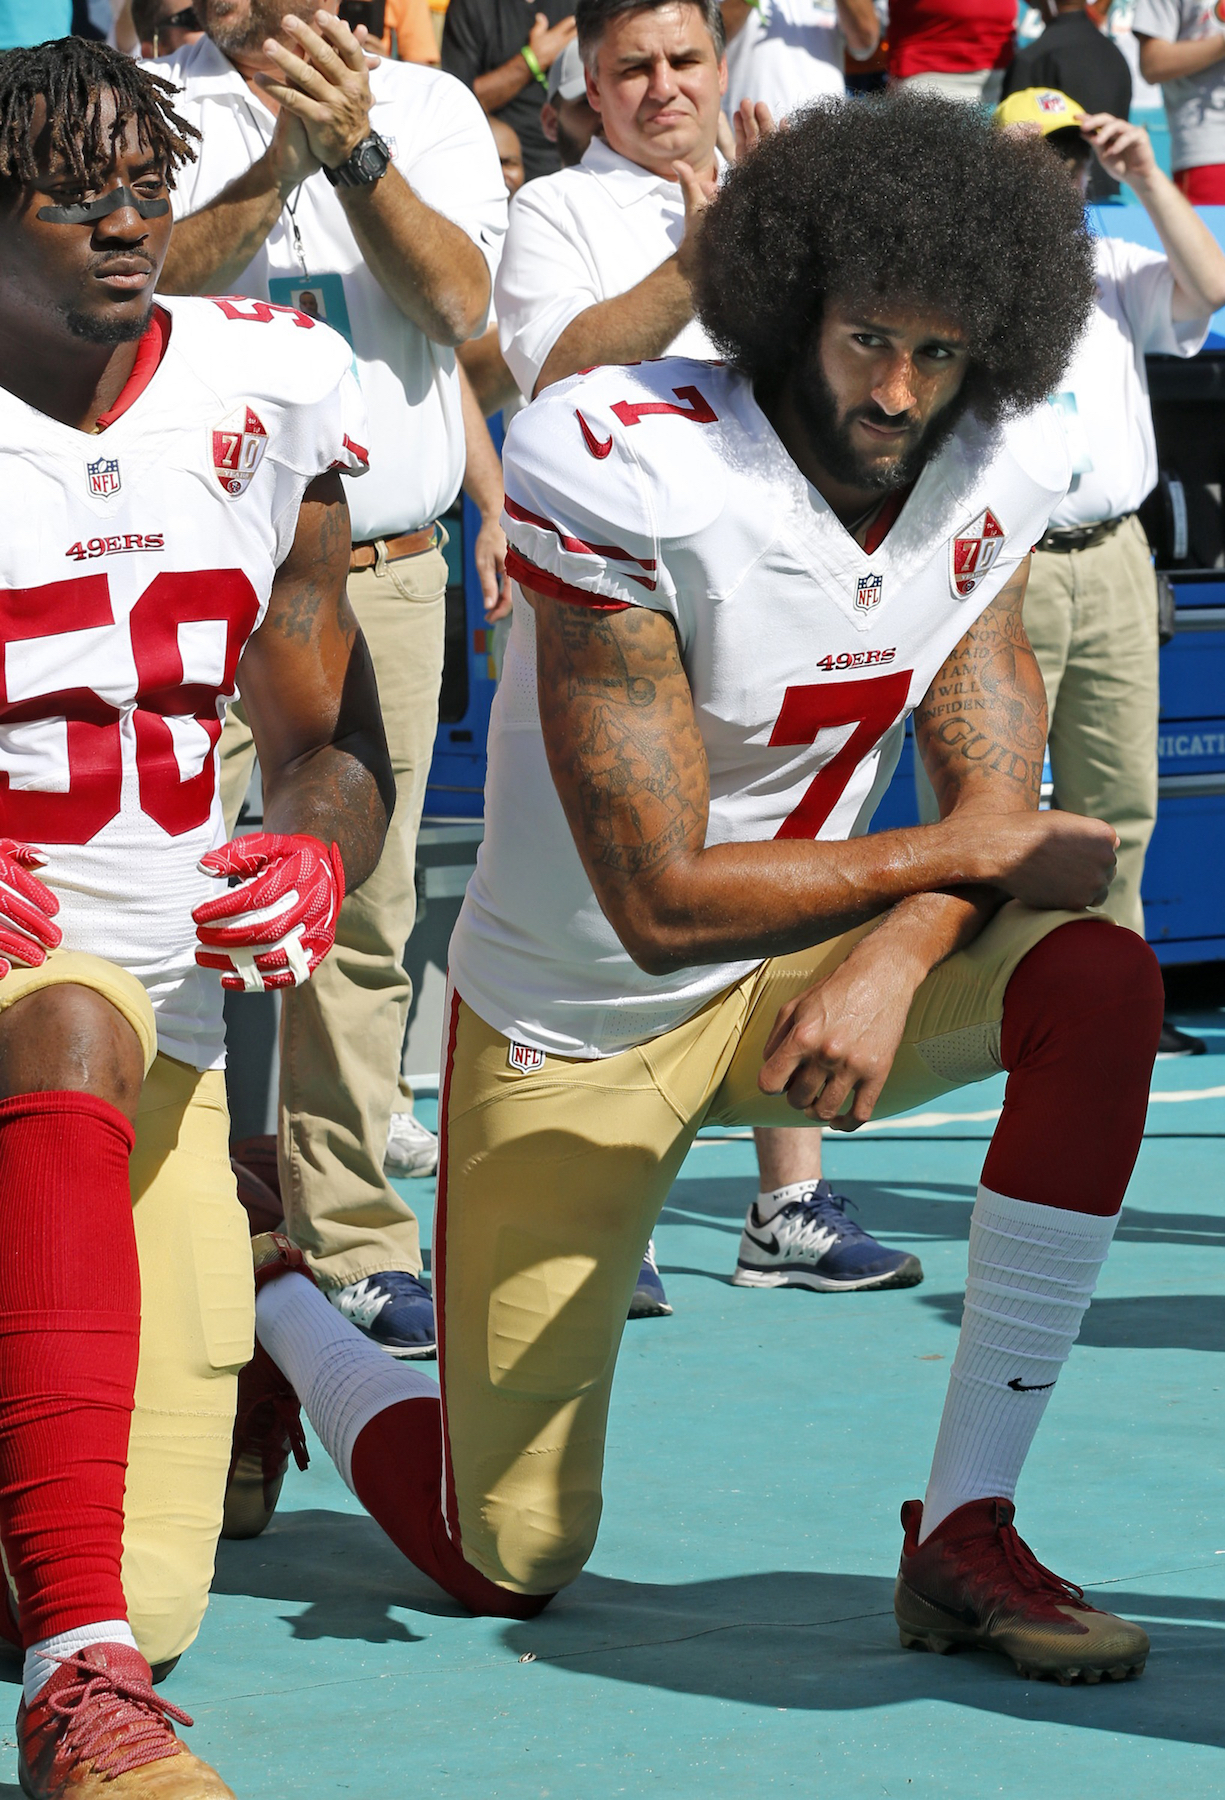 Colin Kaepernick Files Grievance Alleging Collusion by NFL Owners